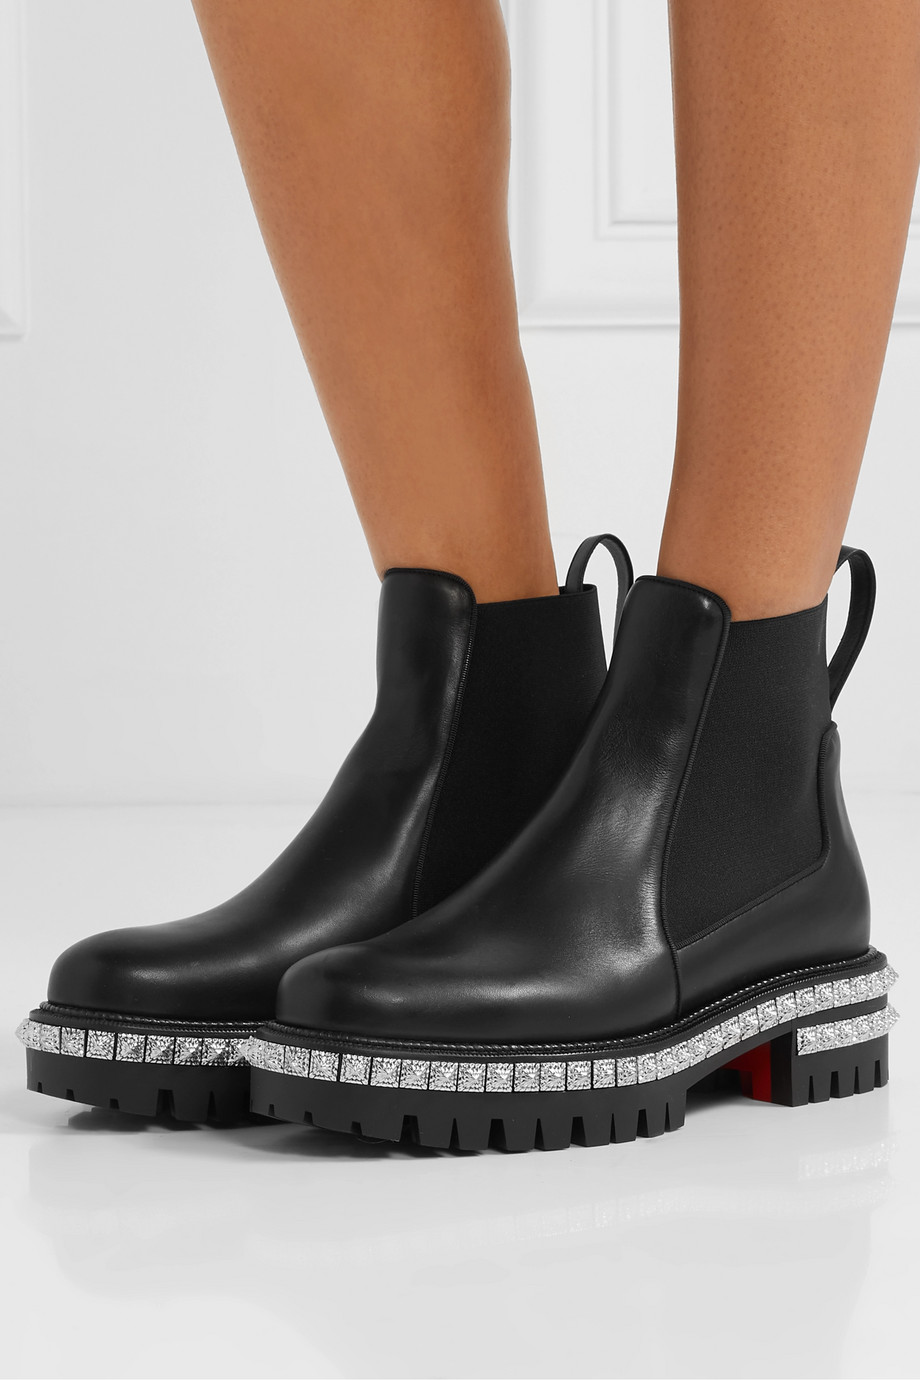 Christian Louboutin By The River 50mm studded leather Chelsea boots